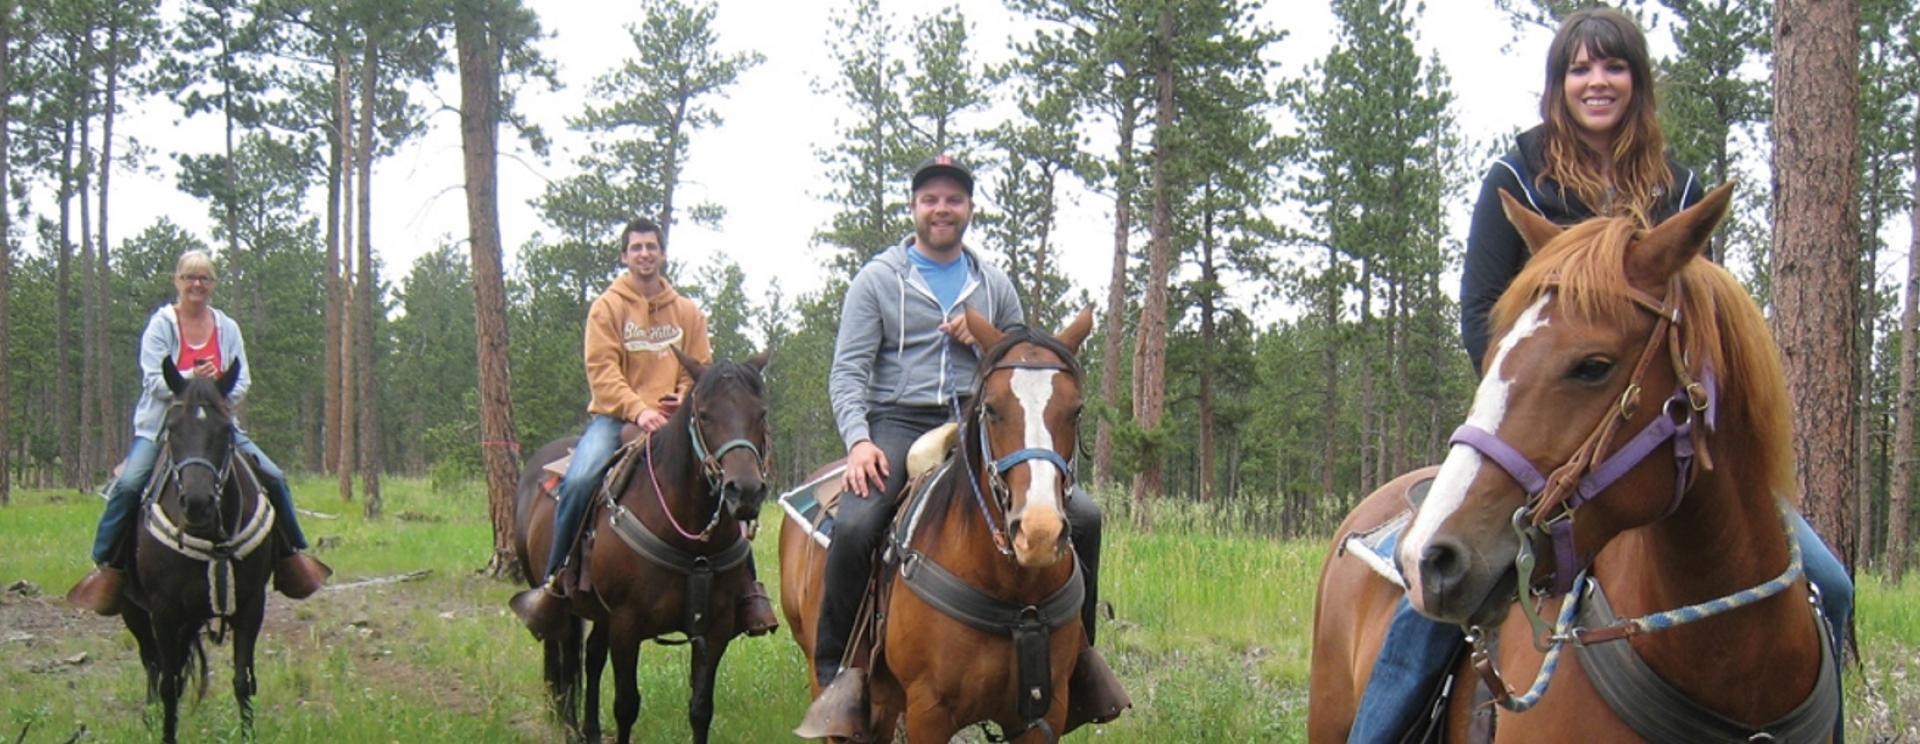 Trail Rides at High Country Guest Ranch